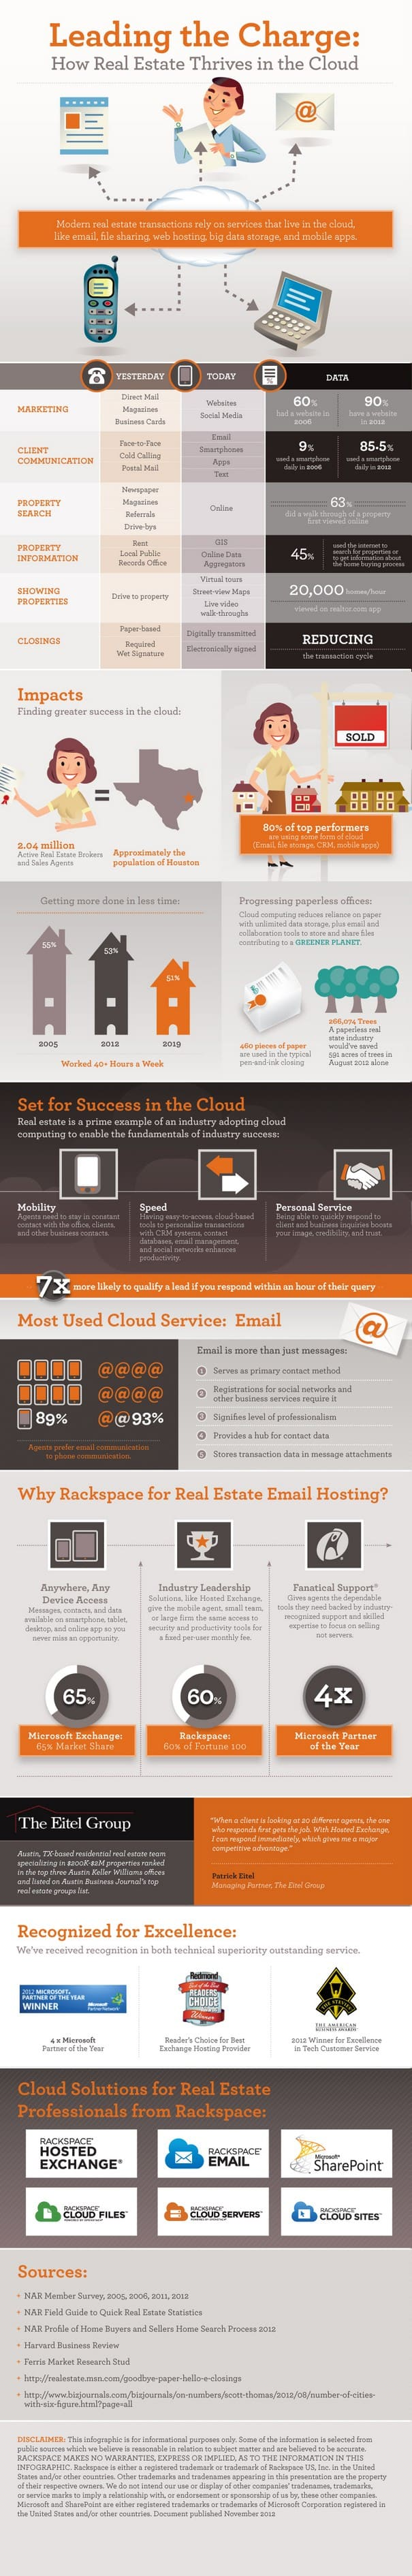 How Real Estate Sells With Cloud Computing INFOGRAPHIC